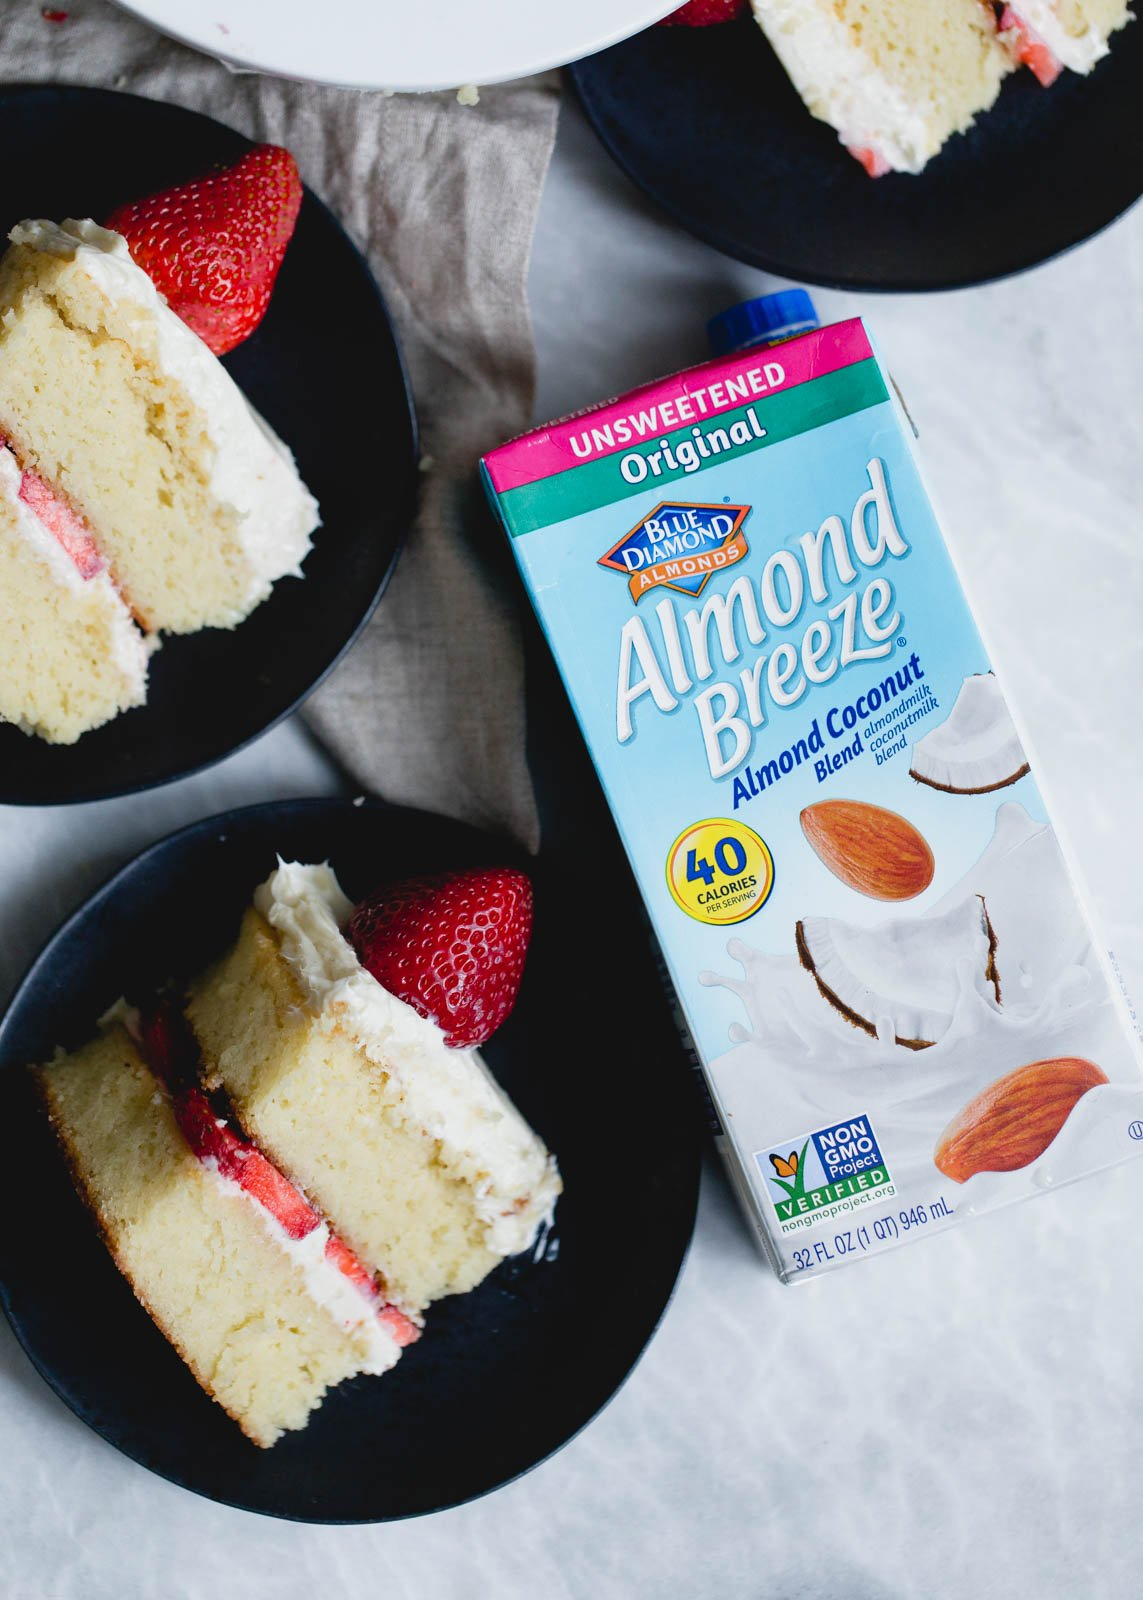 paleo-friendly strawberry shortcake cake slices on two plates next to a carton of almond breeze almond coconut milk